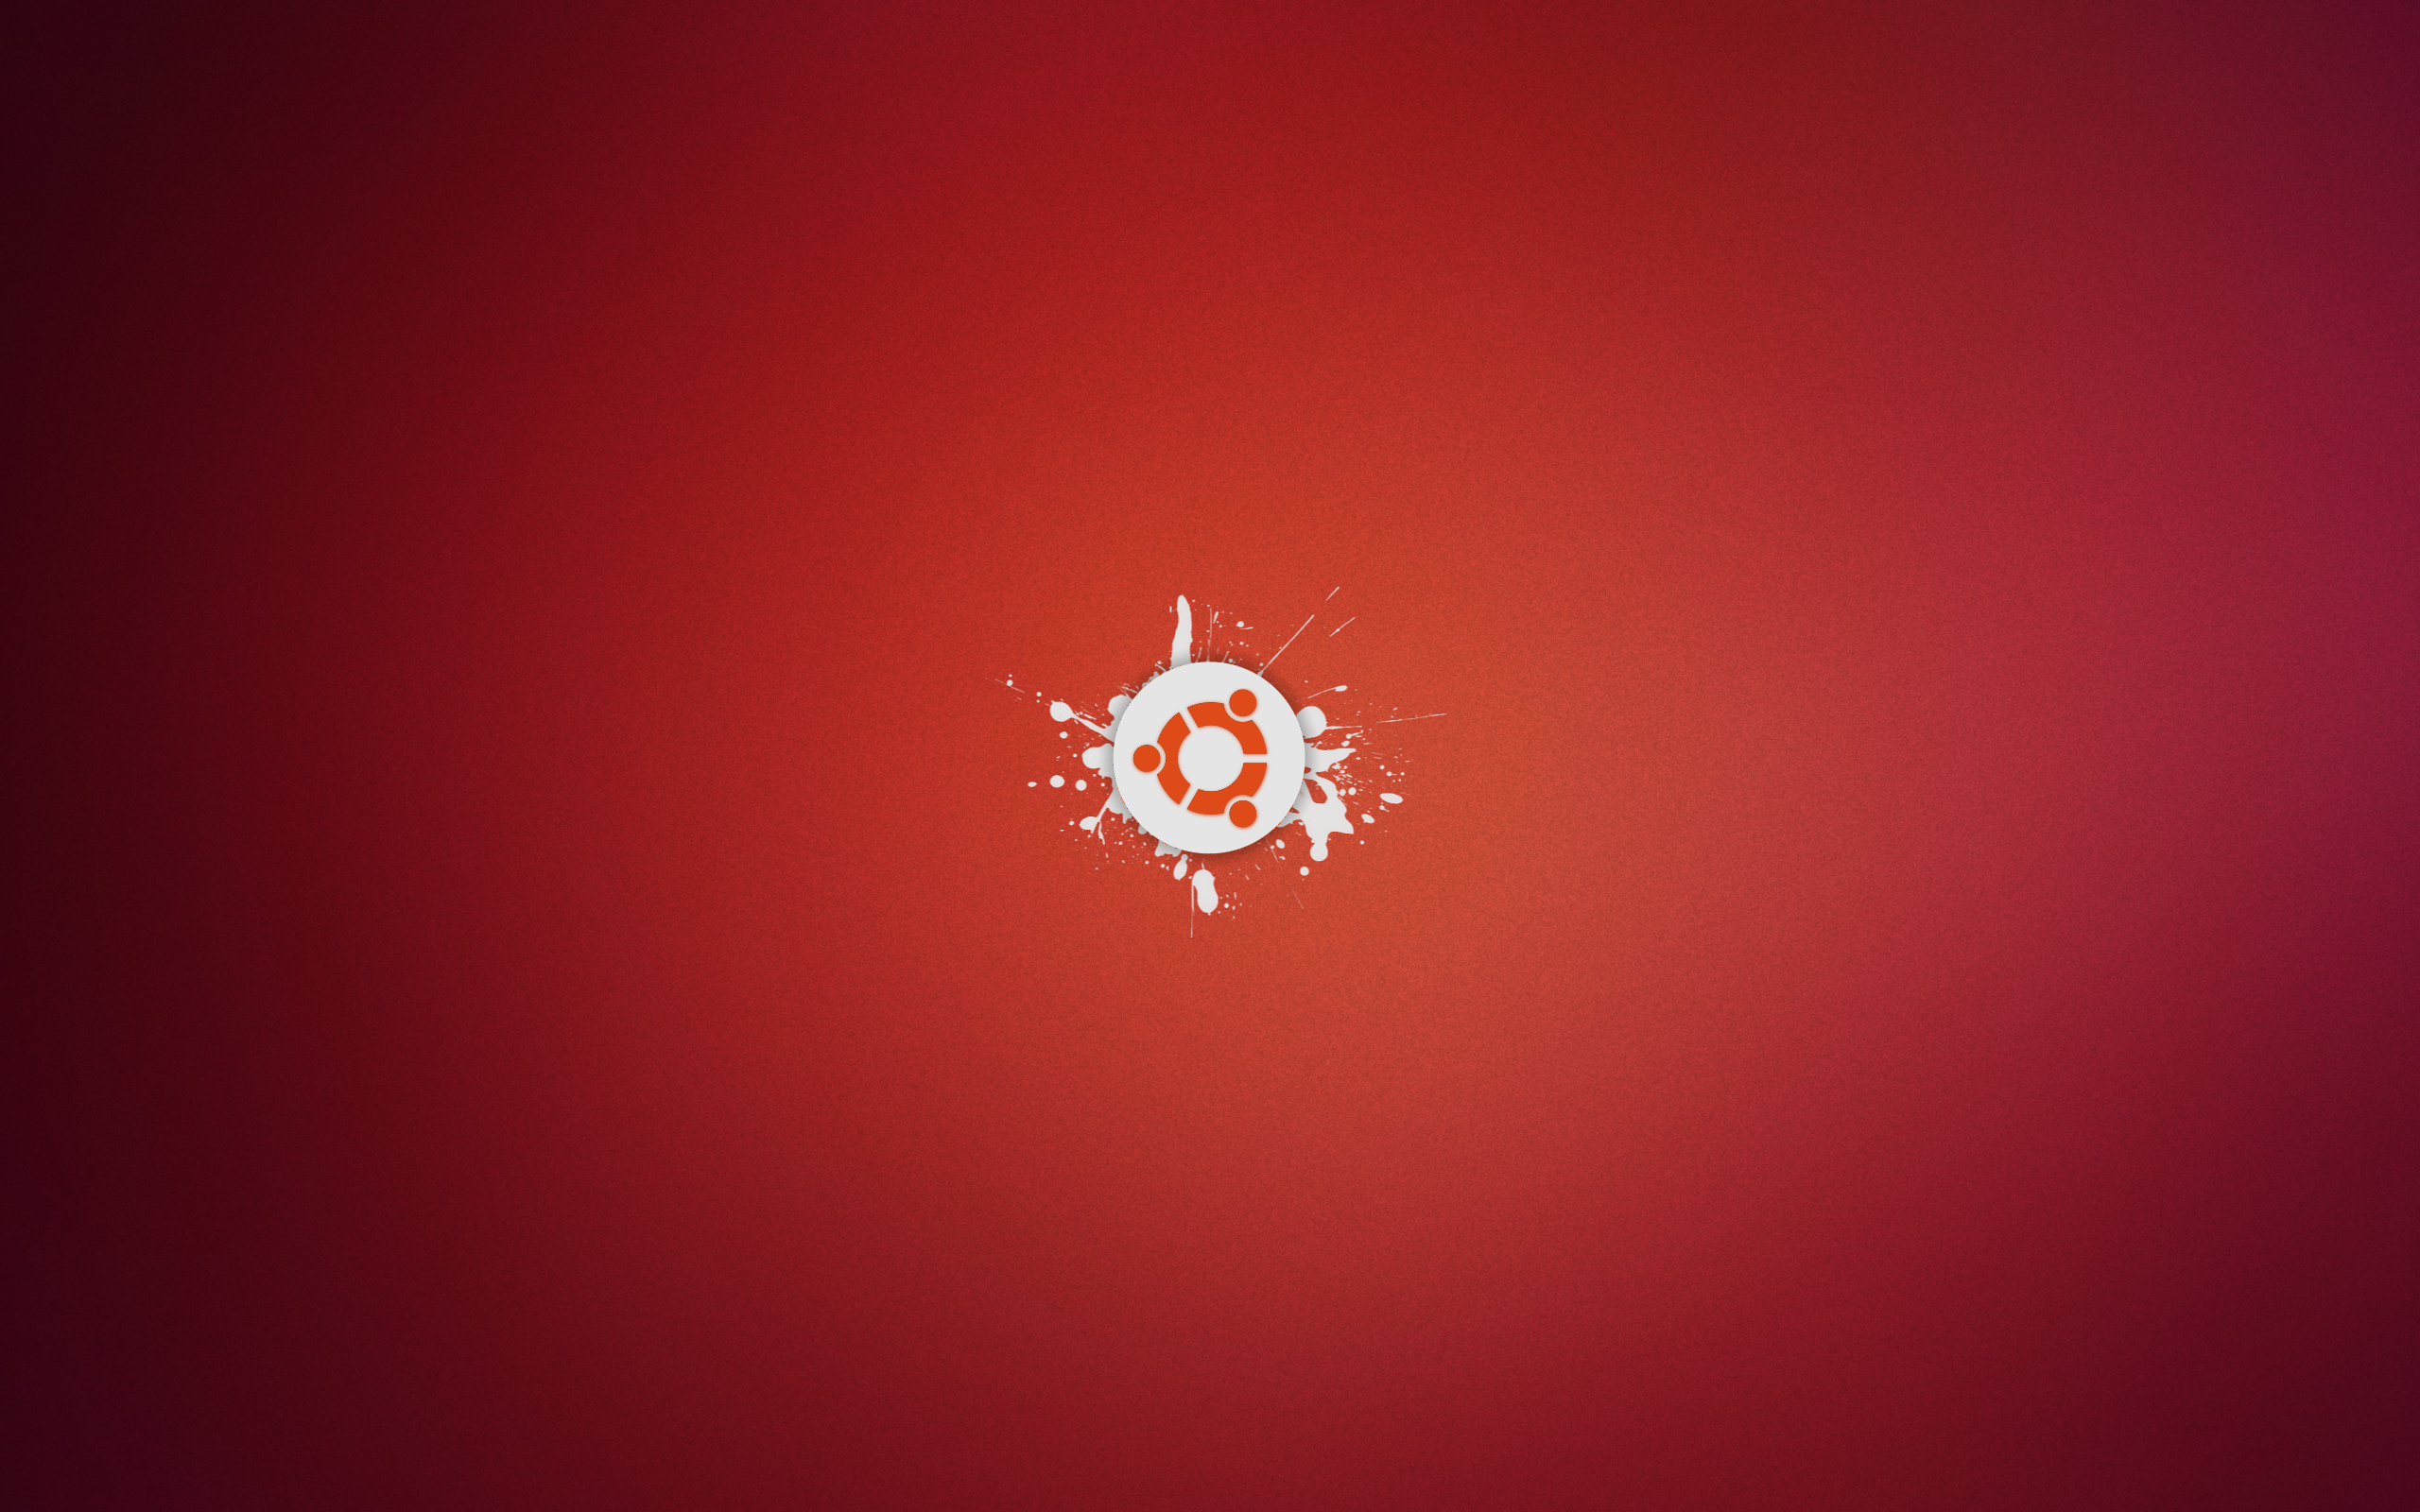 Ubuntu wallpaper 2560x1600